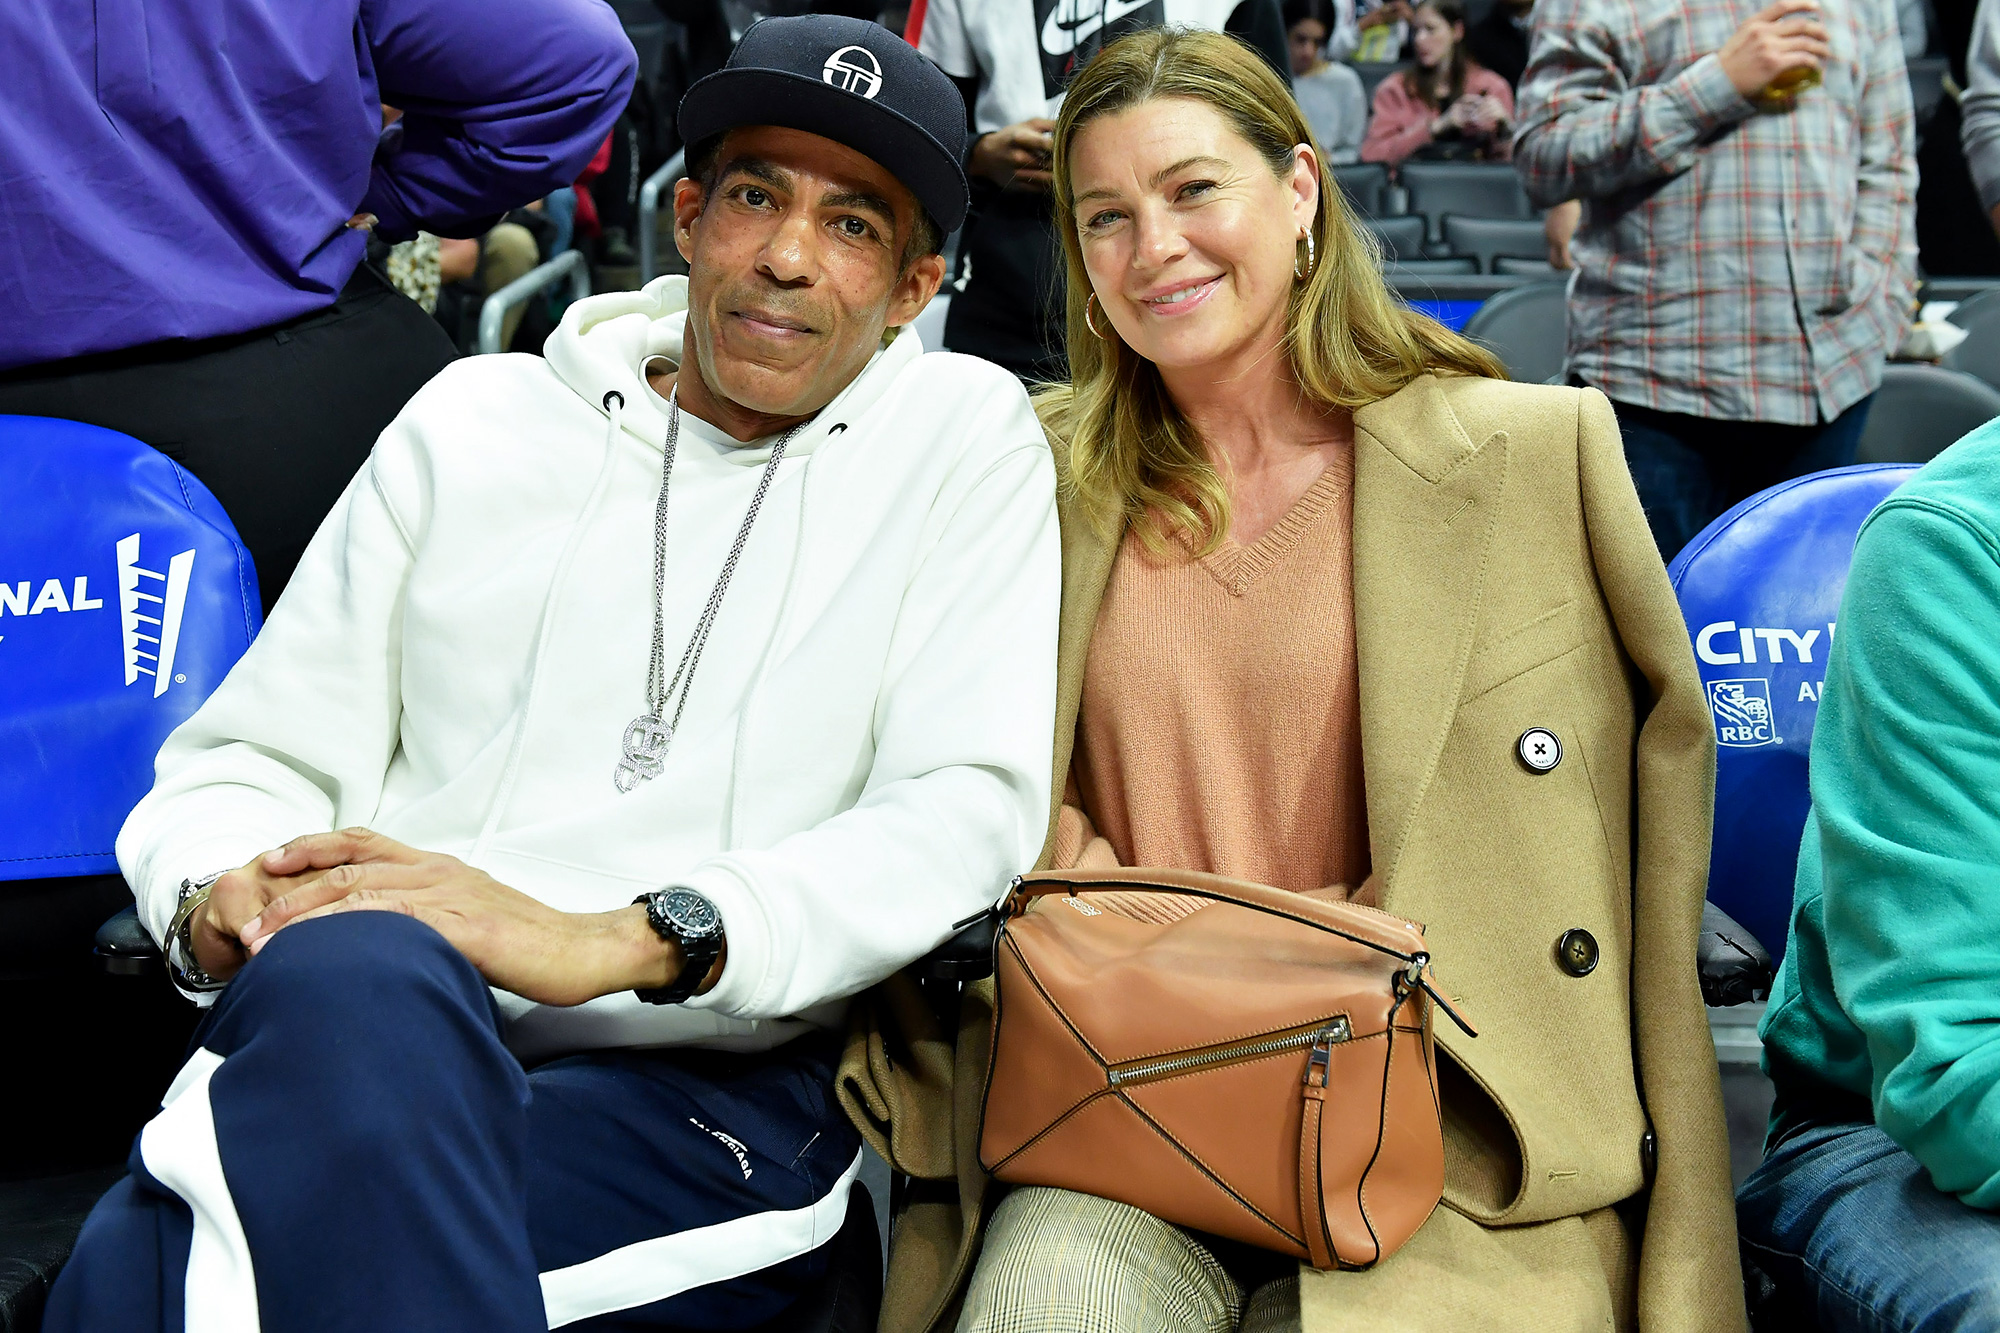 Chris Ivery and Ellen Pompeo attend a basketball game between the Los Angeles Clippers and Cleveland Cavaliers at Staples Center on January 14, 2020 in Los Angeles, California.